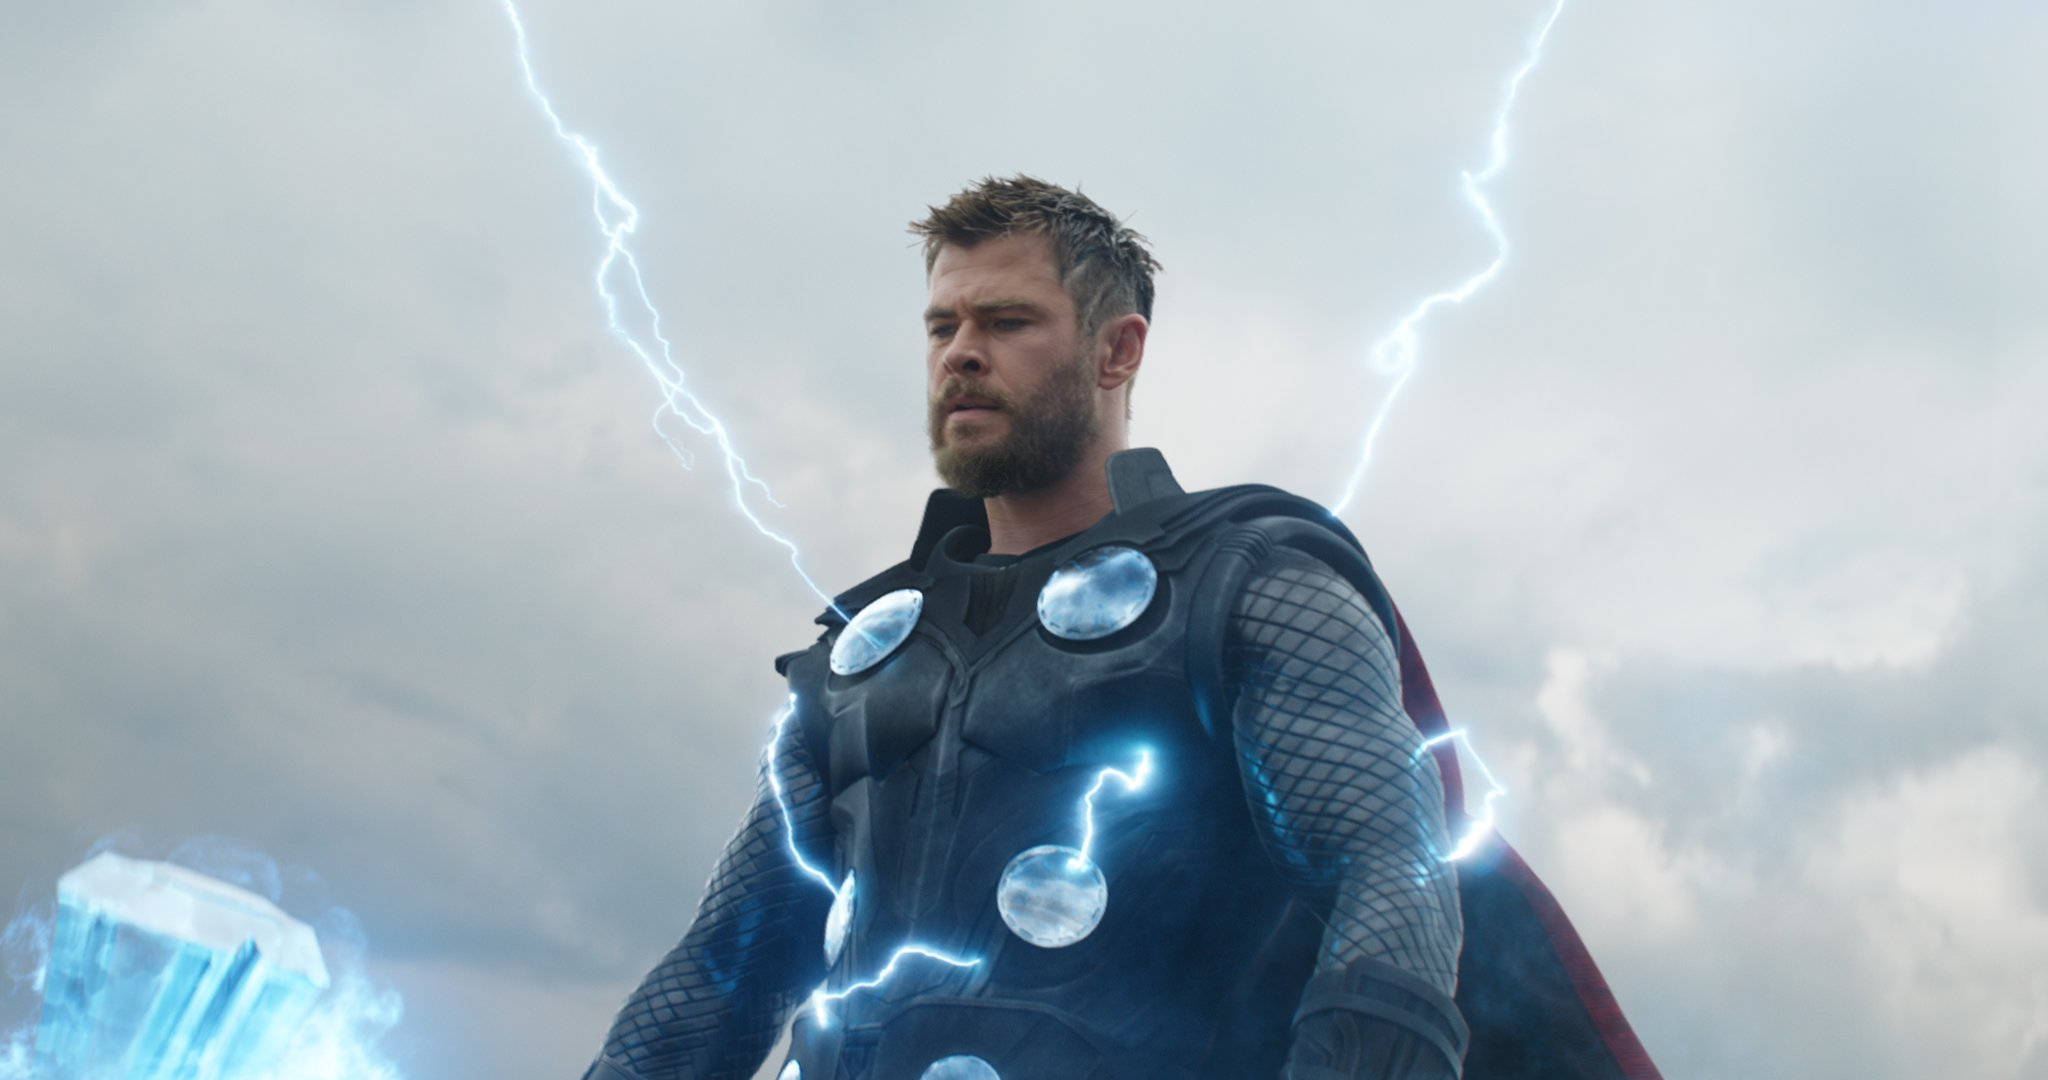 Photo du film Avengers: Endgame avec Thor (Chris Hemsworth)